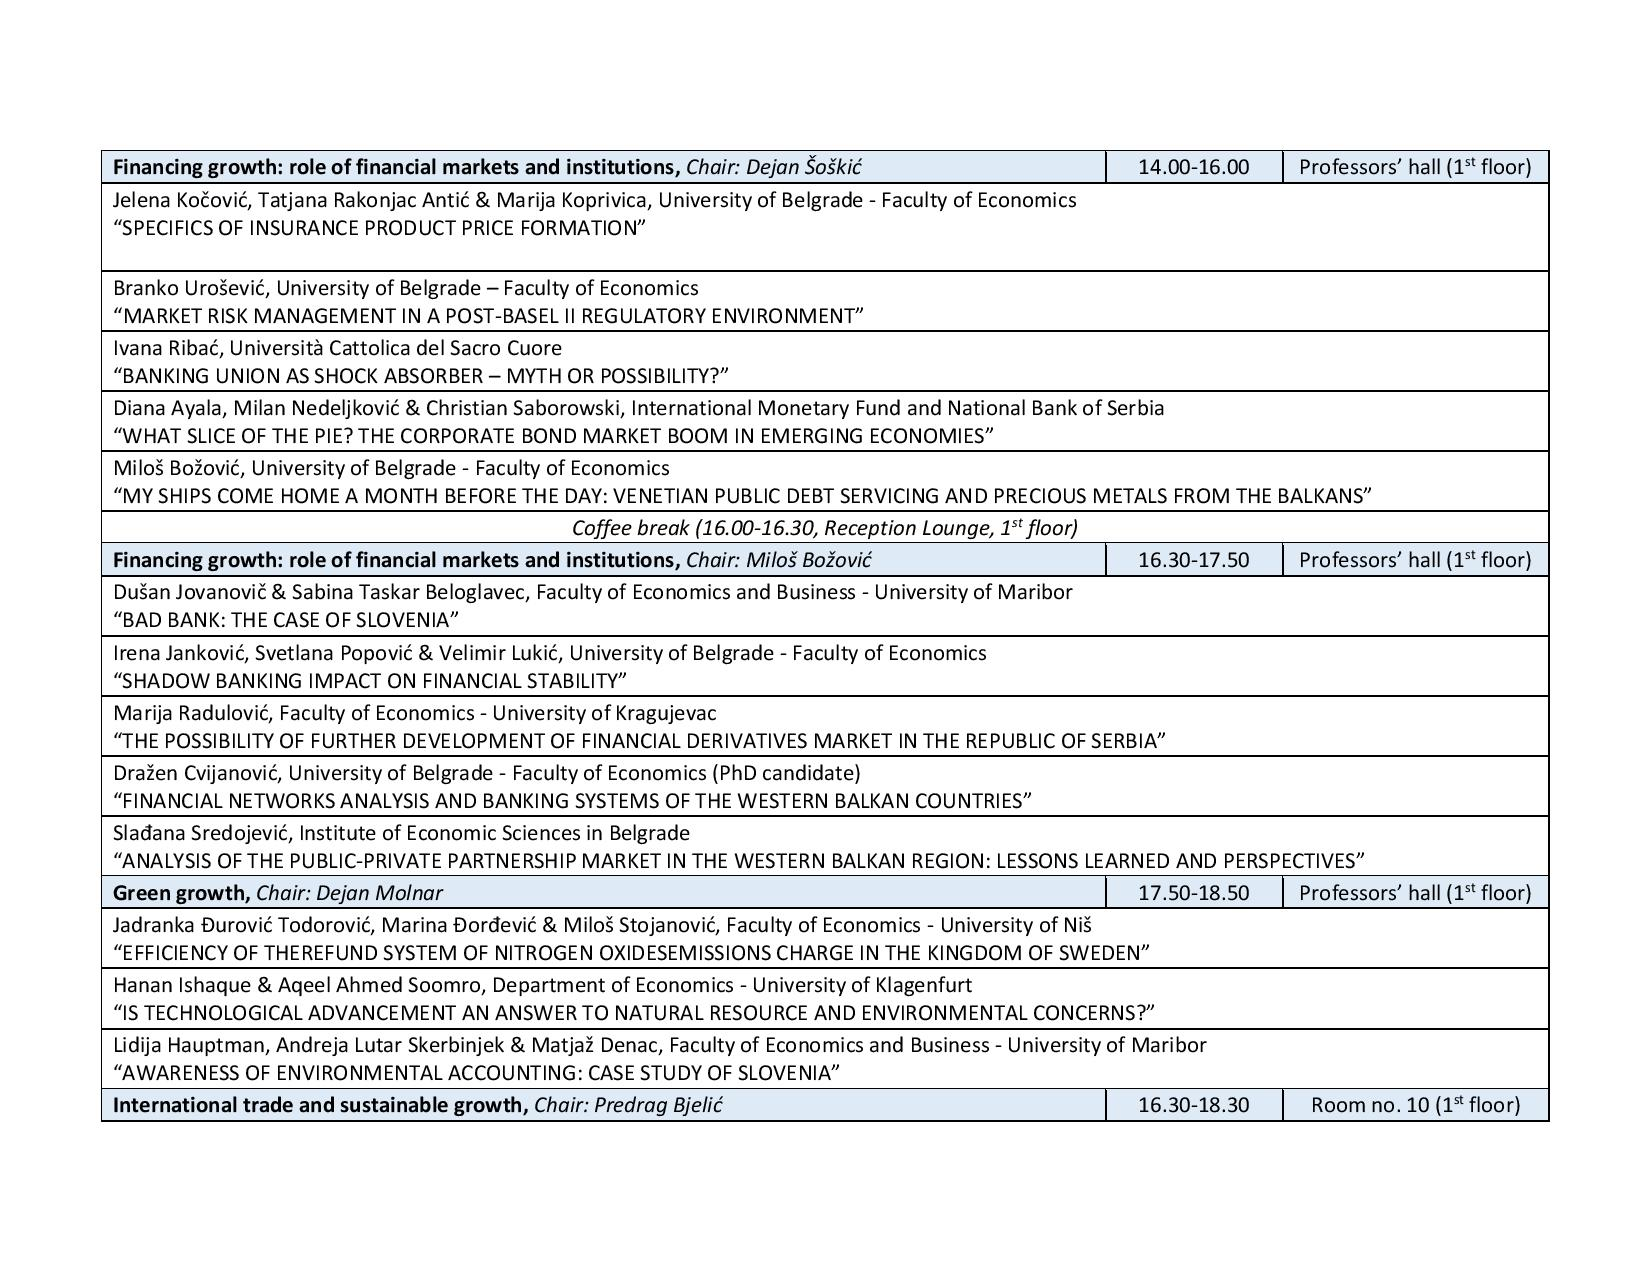 Conference program_Faculty of Economics (University of Belgrade)_draft-page-007